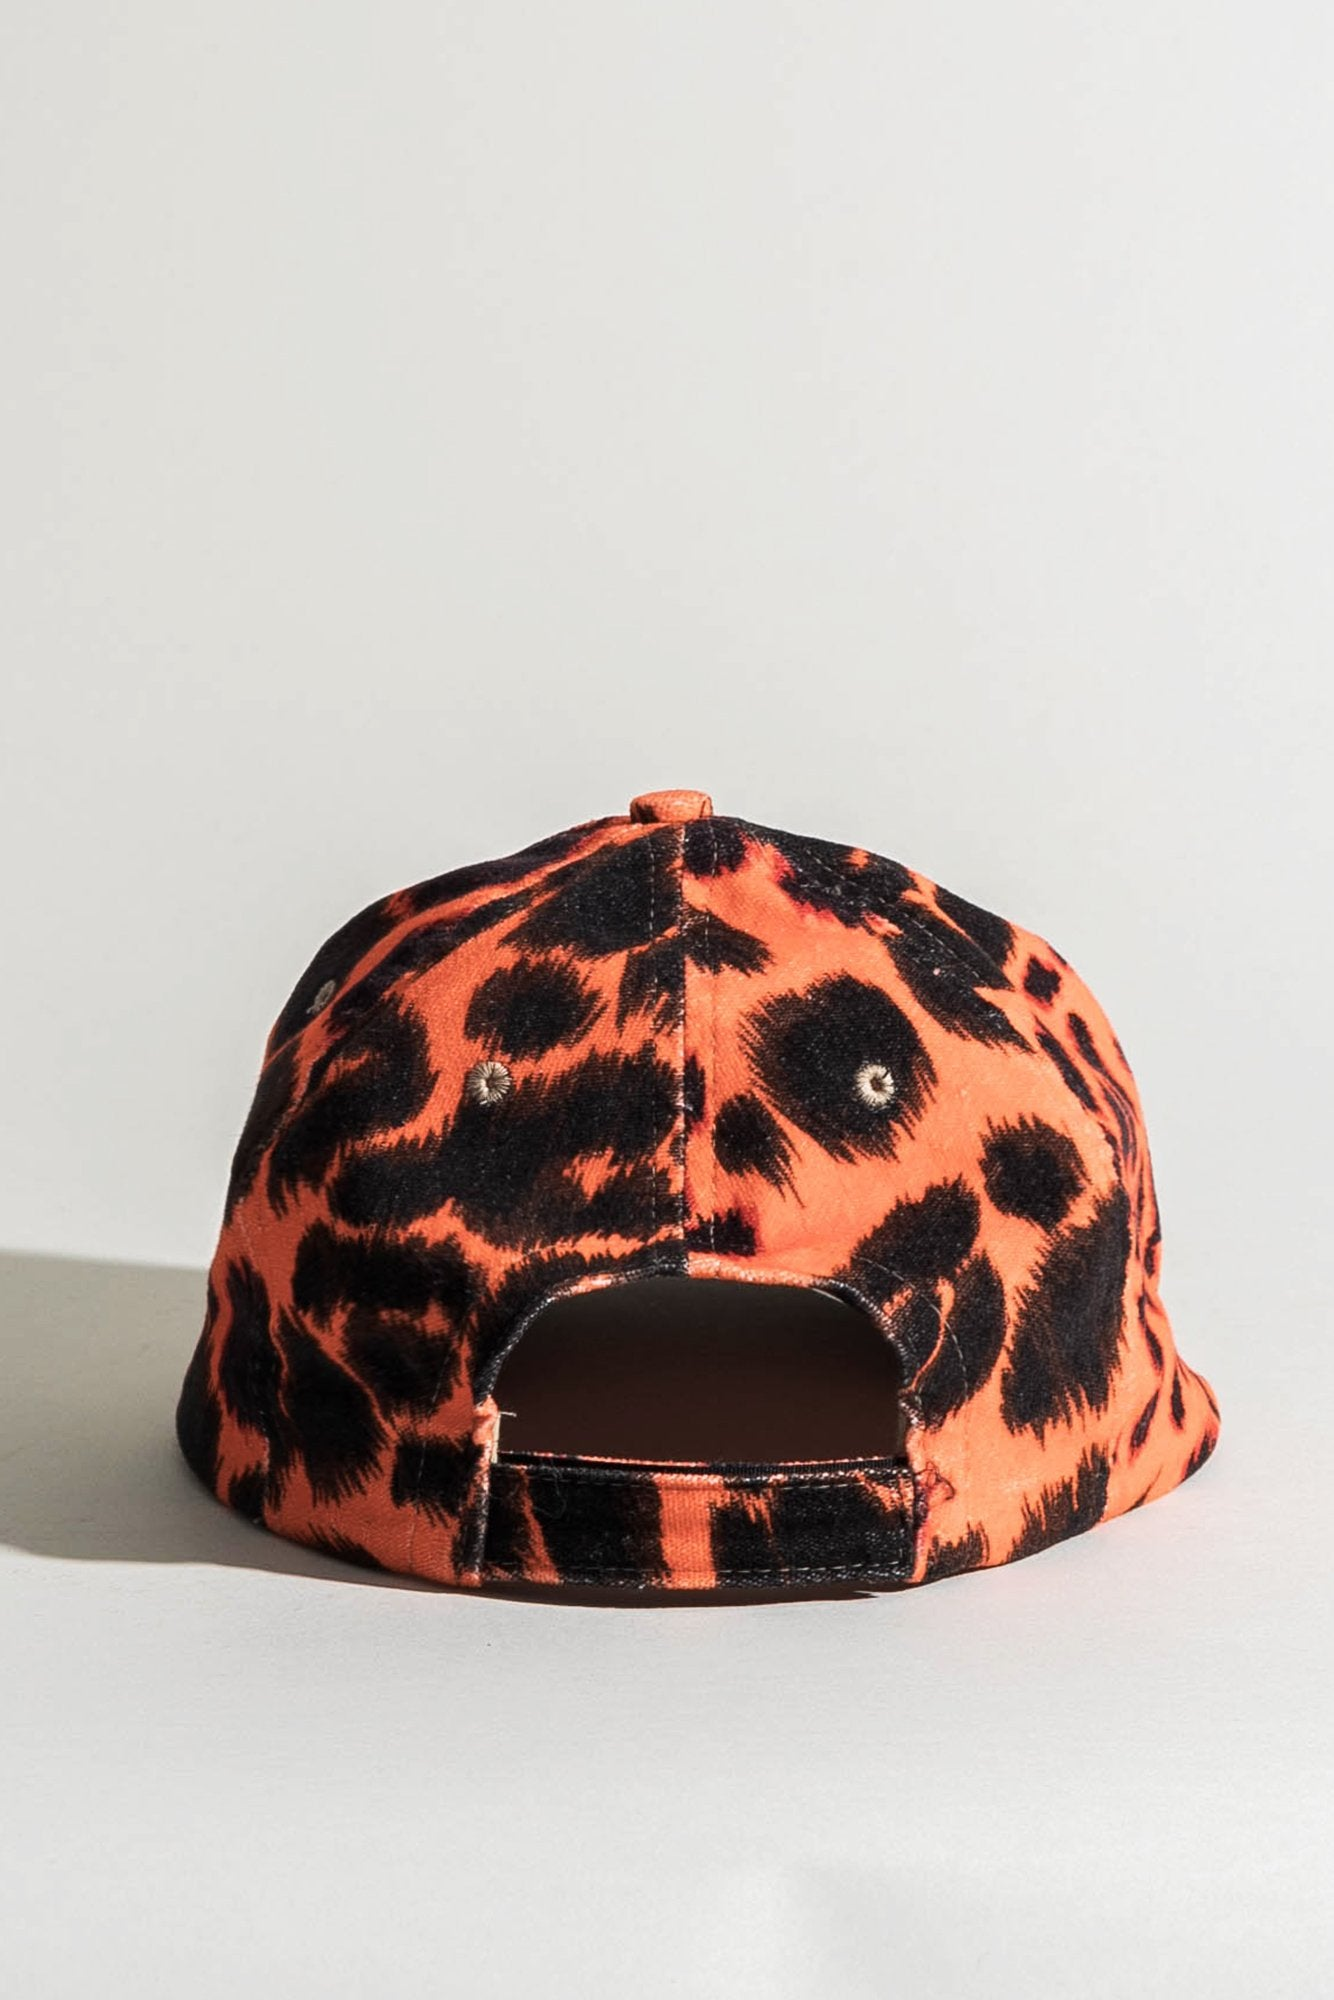 R13 Flat Brim Baseball Cap - Orange Leopard